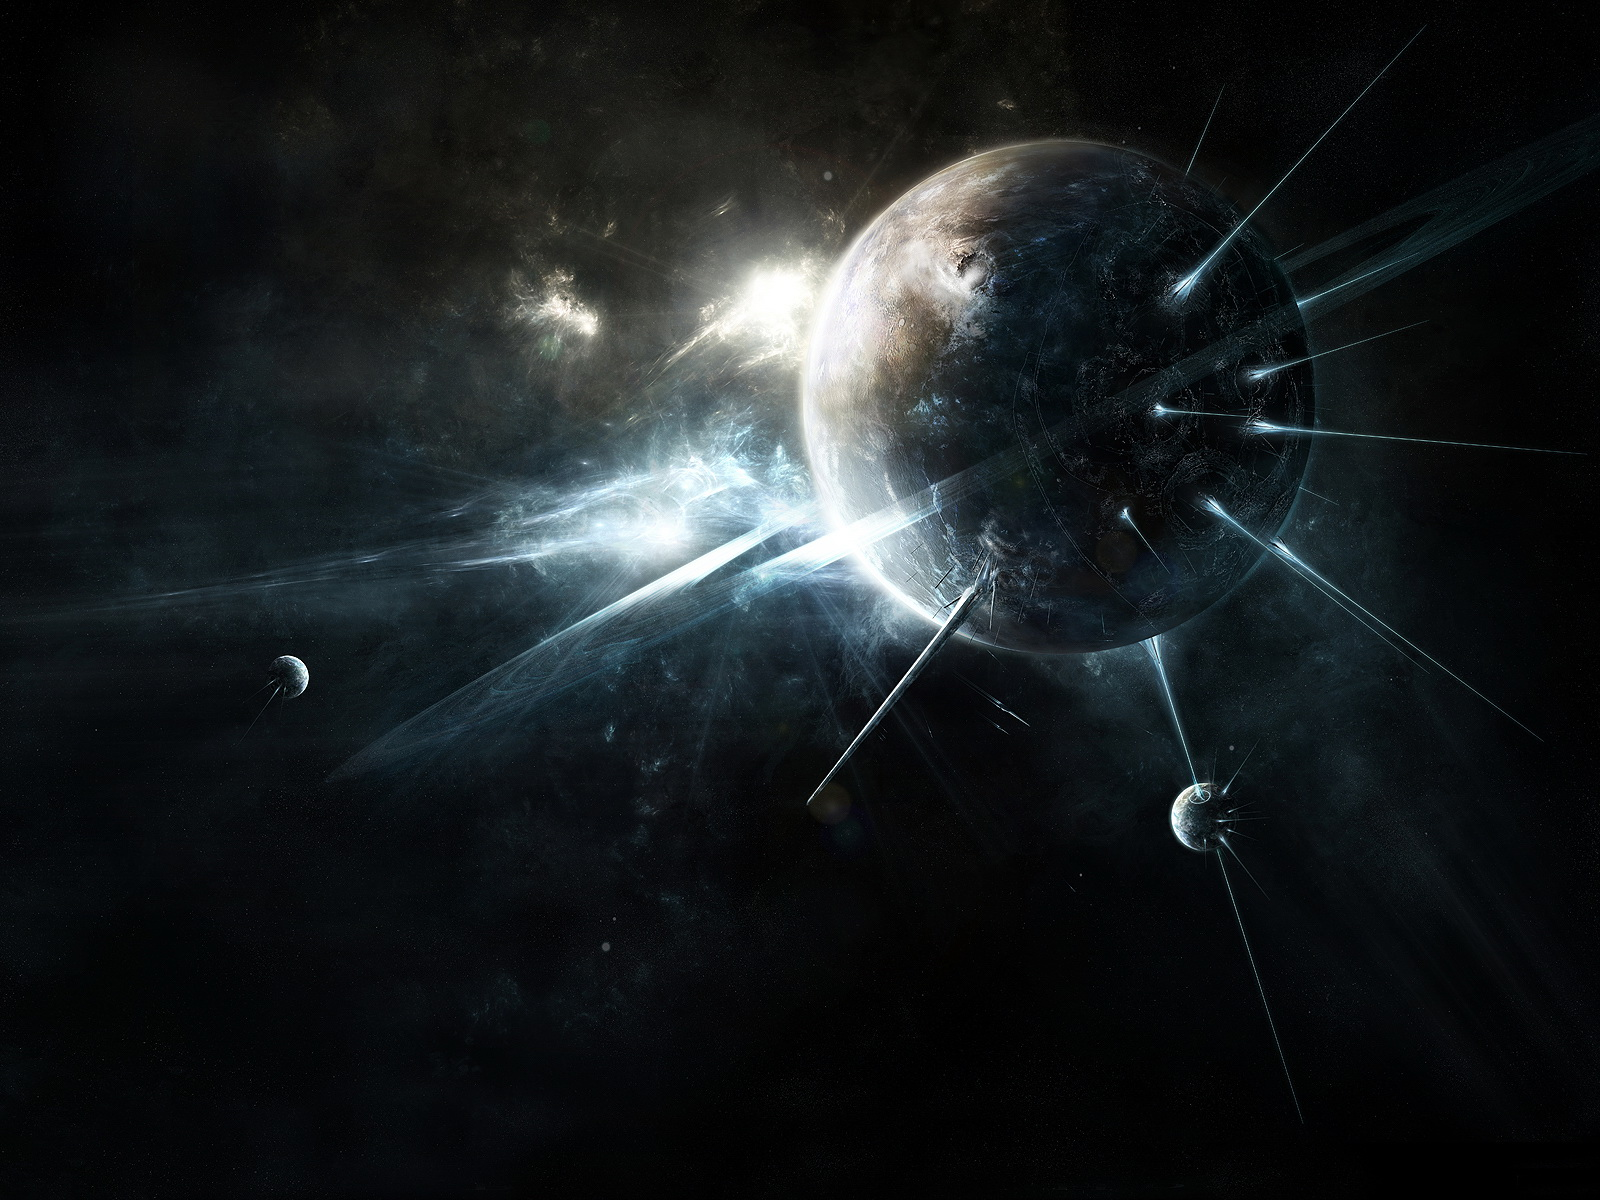 Dark Space Abstract Wallpapers HD Wallpapers 1600x1200